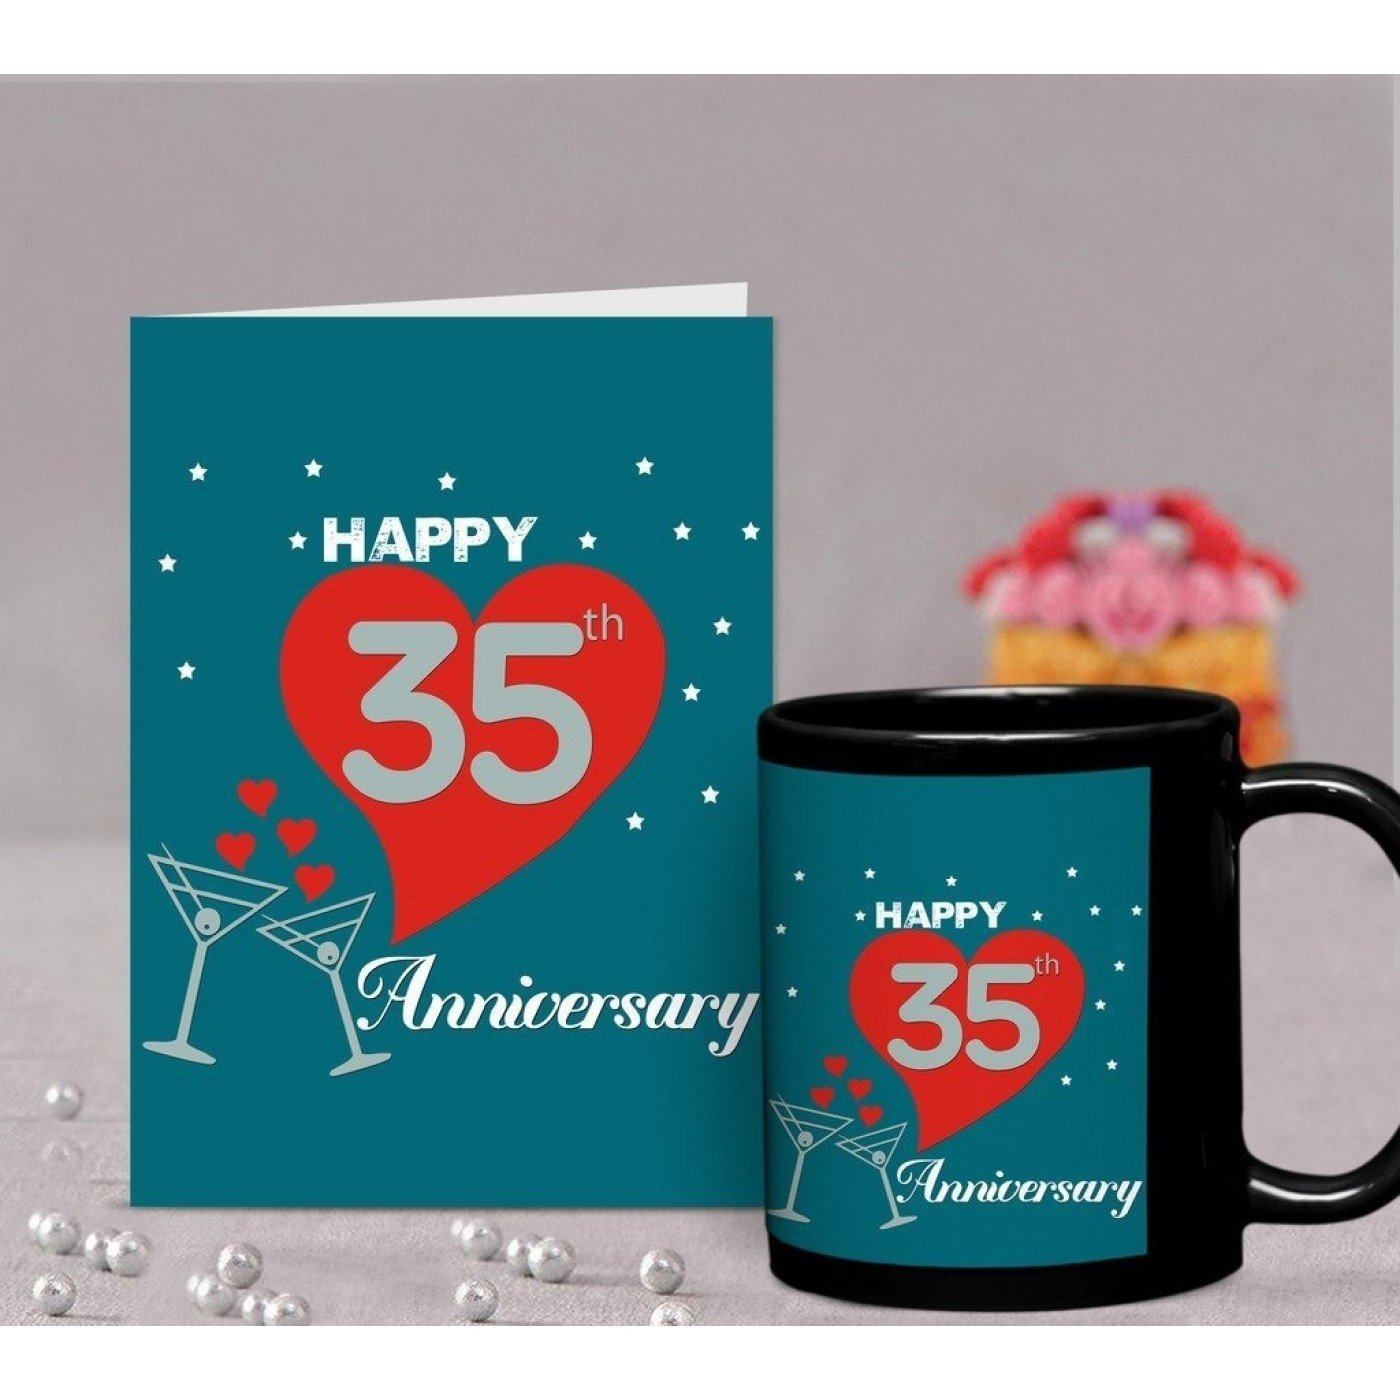 10 Pretty 35Th Wedding Anniversary Gift Ideas what is the 35th wedding anniversary gift elegant 35th wedding 2020